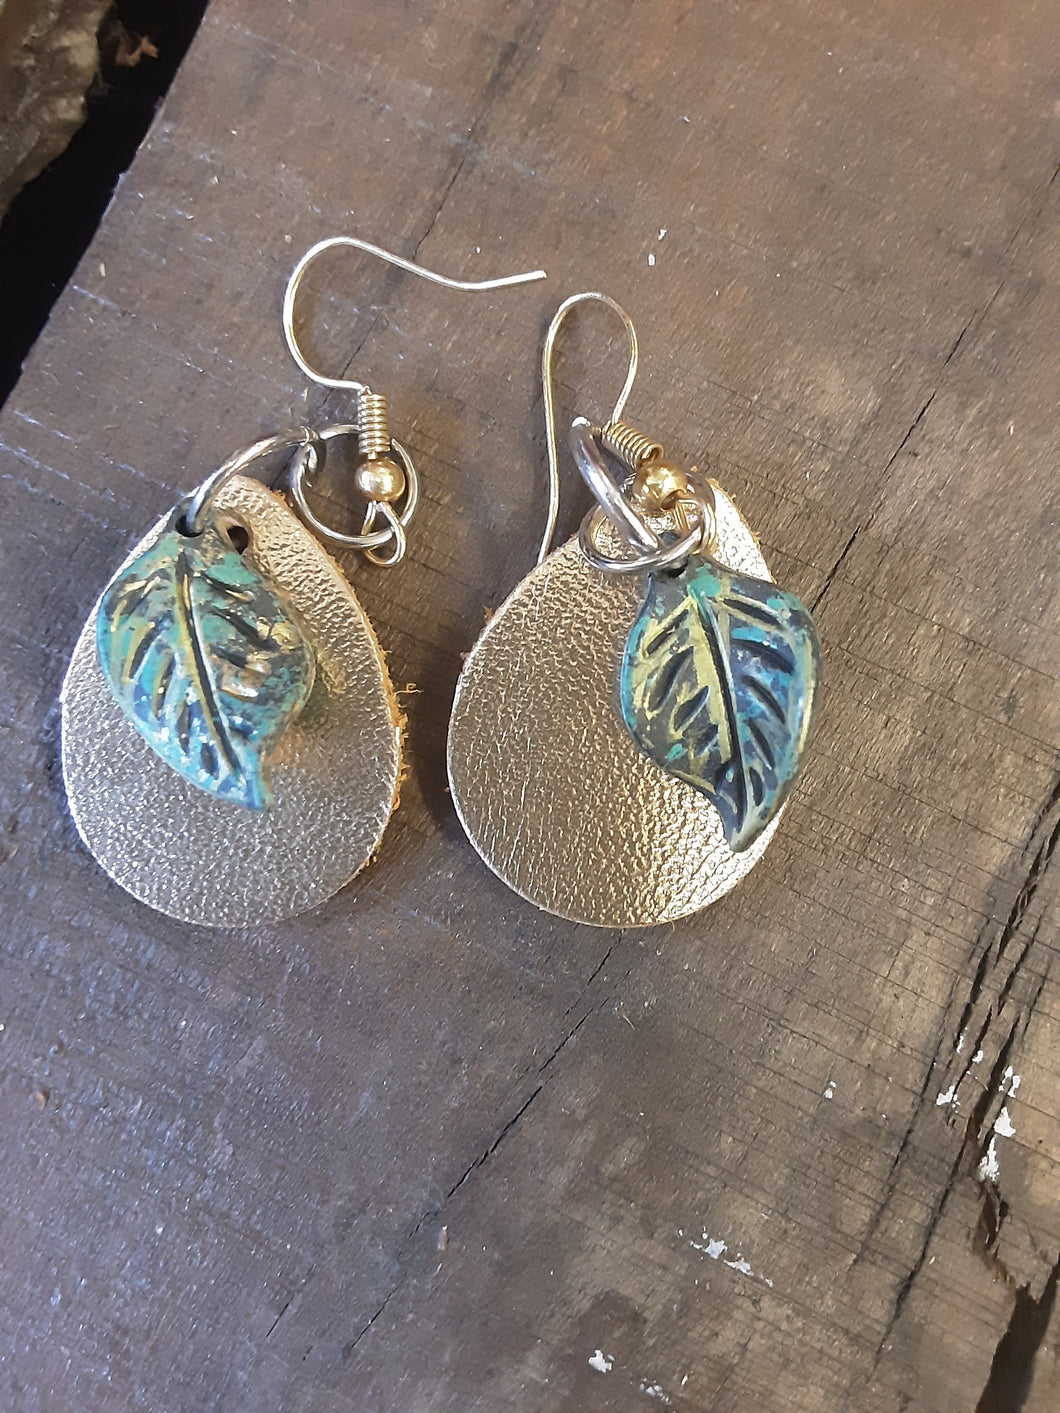 Leather Earrings Handcrafted by Junk Farey Julz